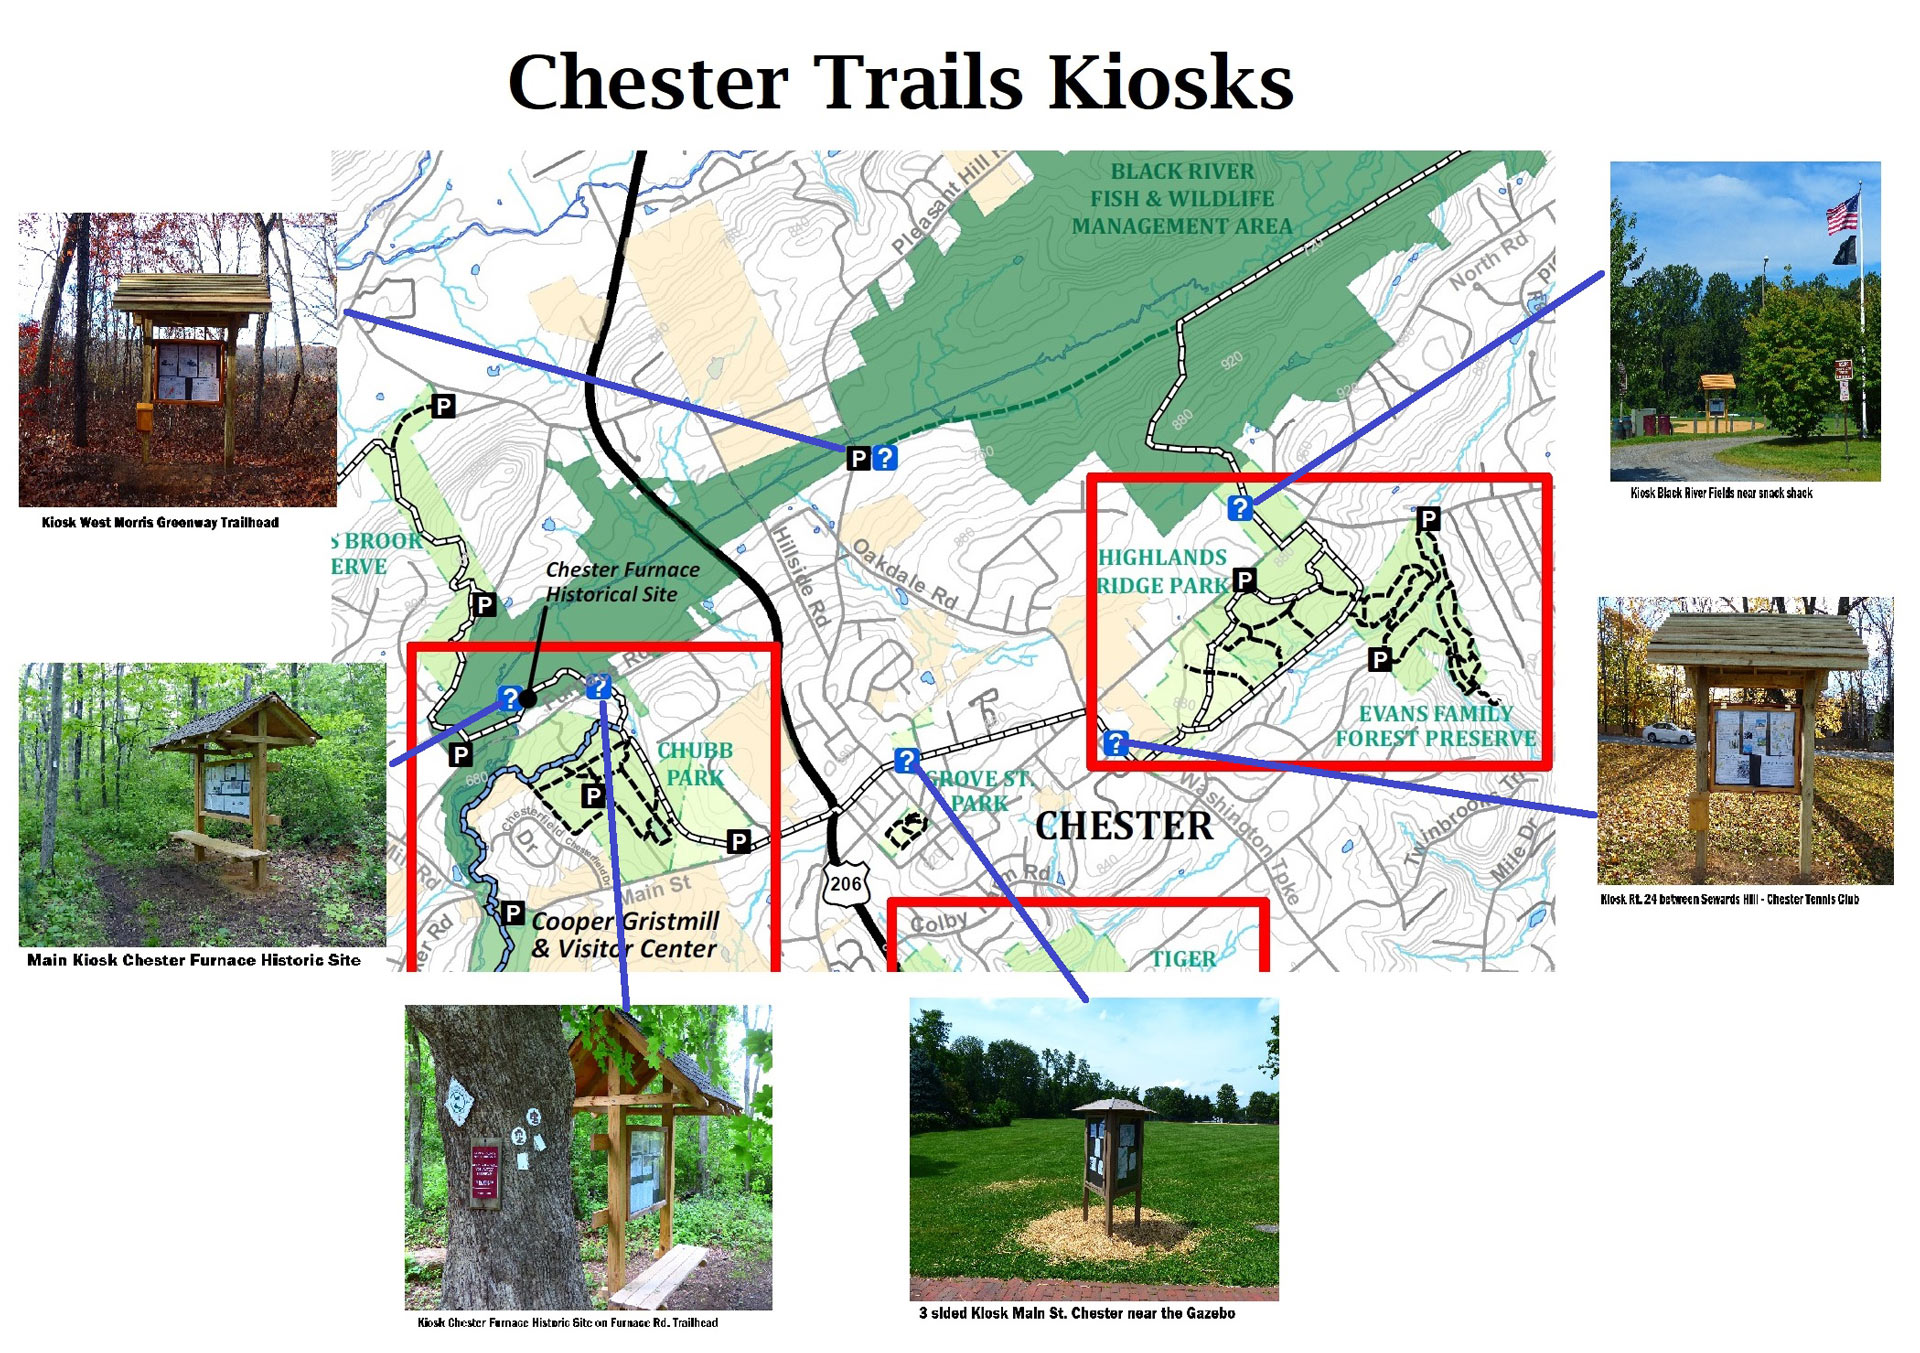 Chester Trails Kiosks